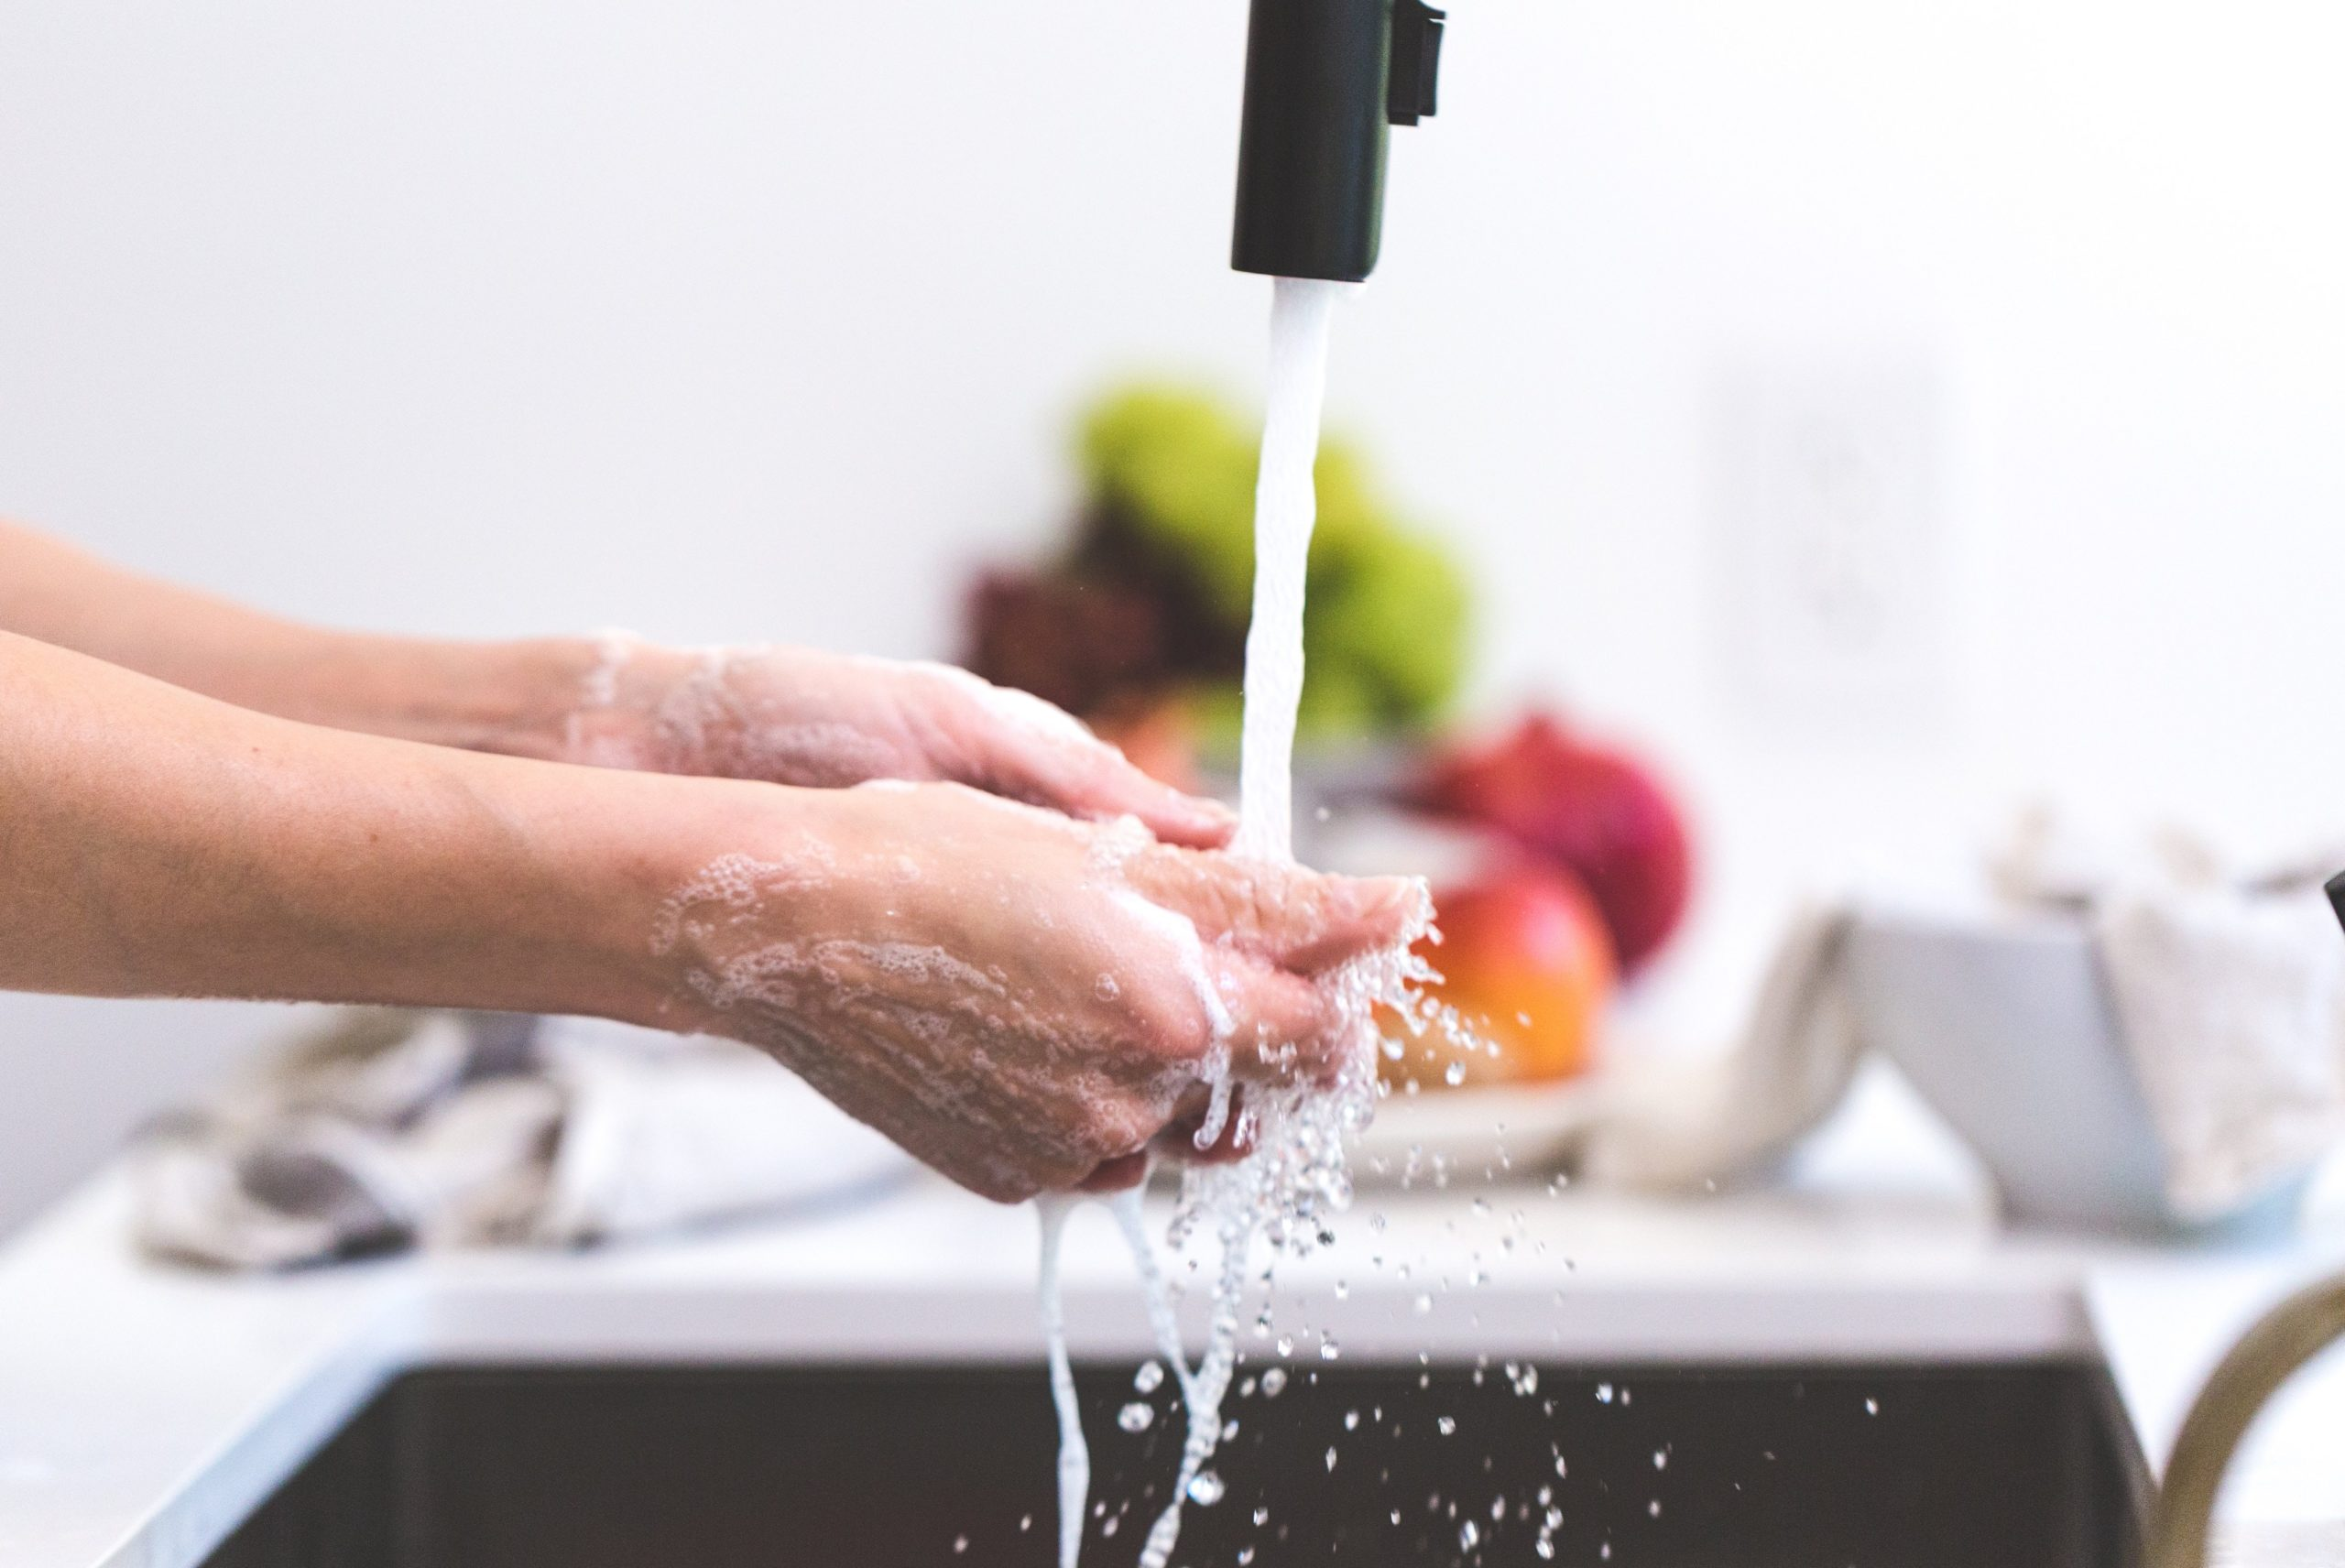 lady washing hands under tap, with colourful fruit in background